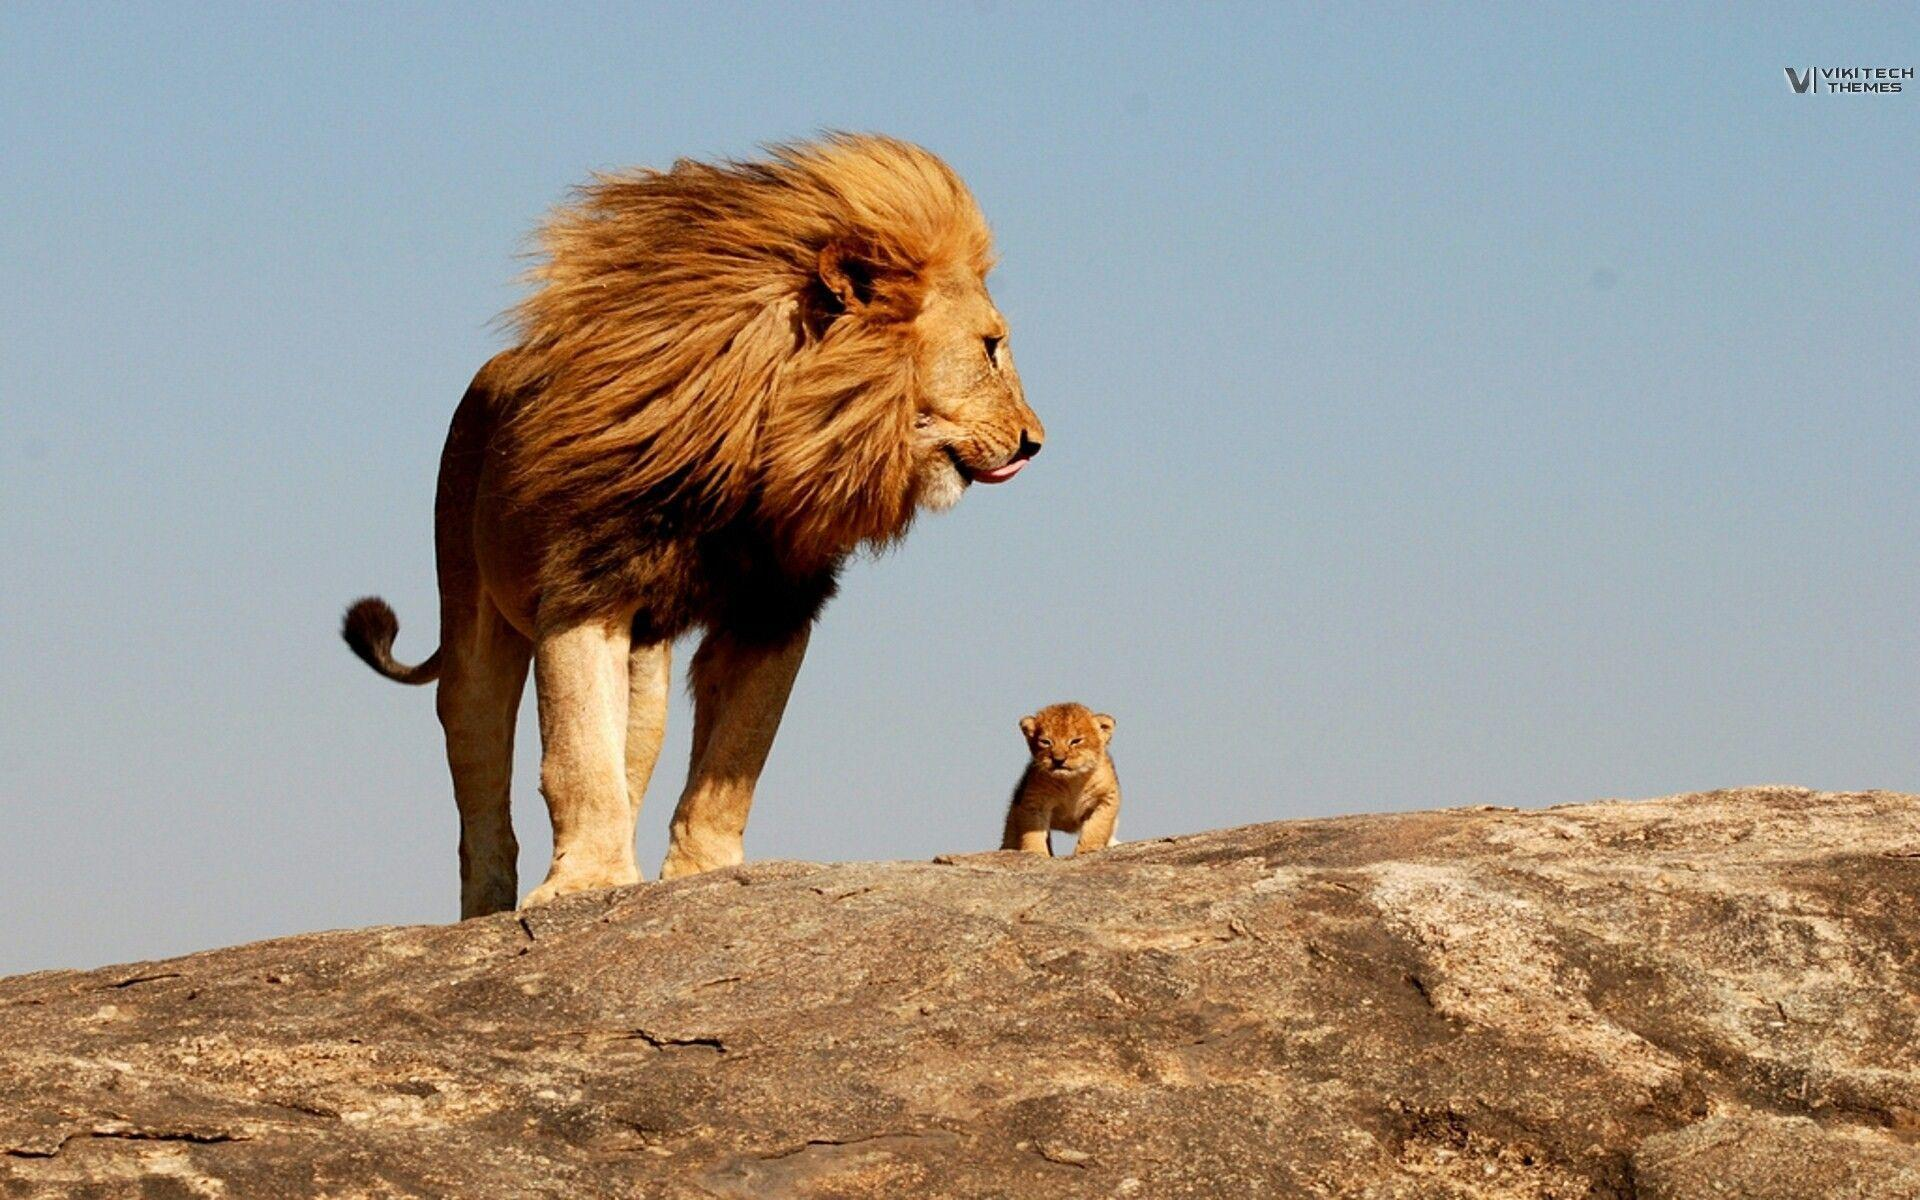 Lion, king, safari, savage wallpapers and images - wallpapers ...